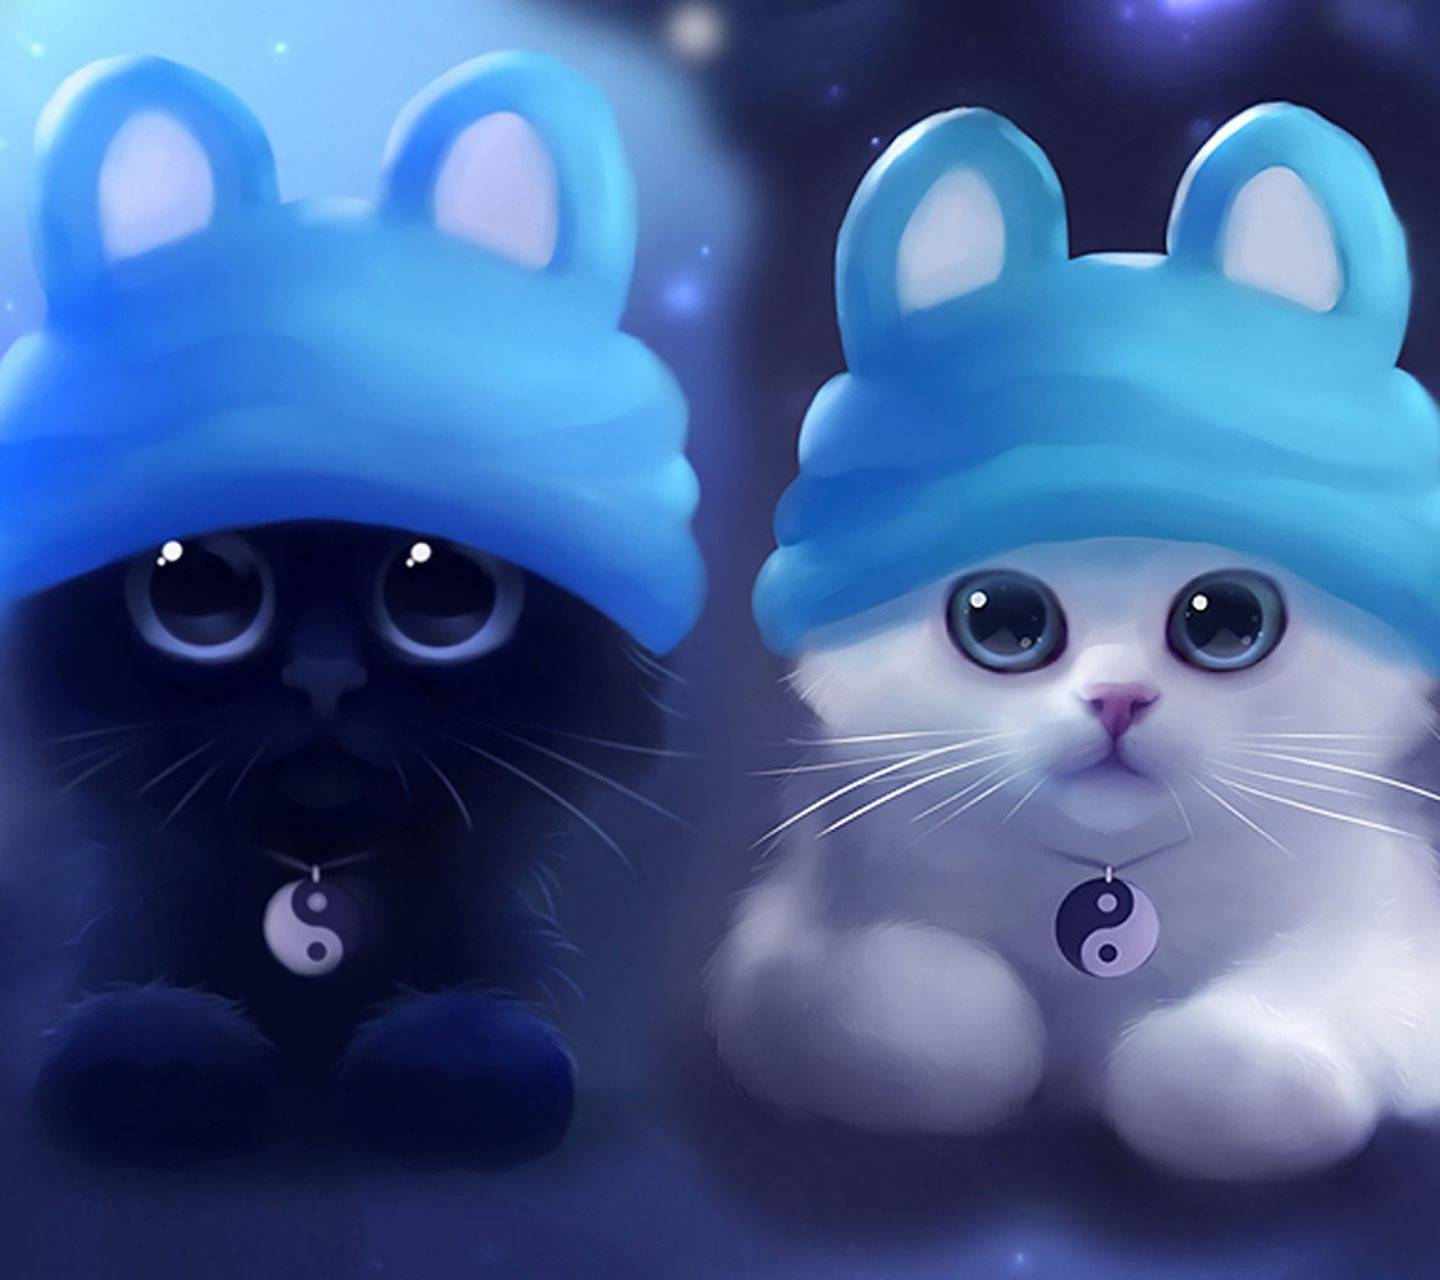 Black Or White Cat Wallpaper By Asuszenpad 98 Free On Zedge